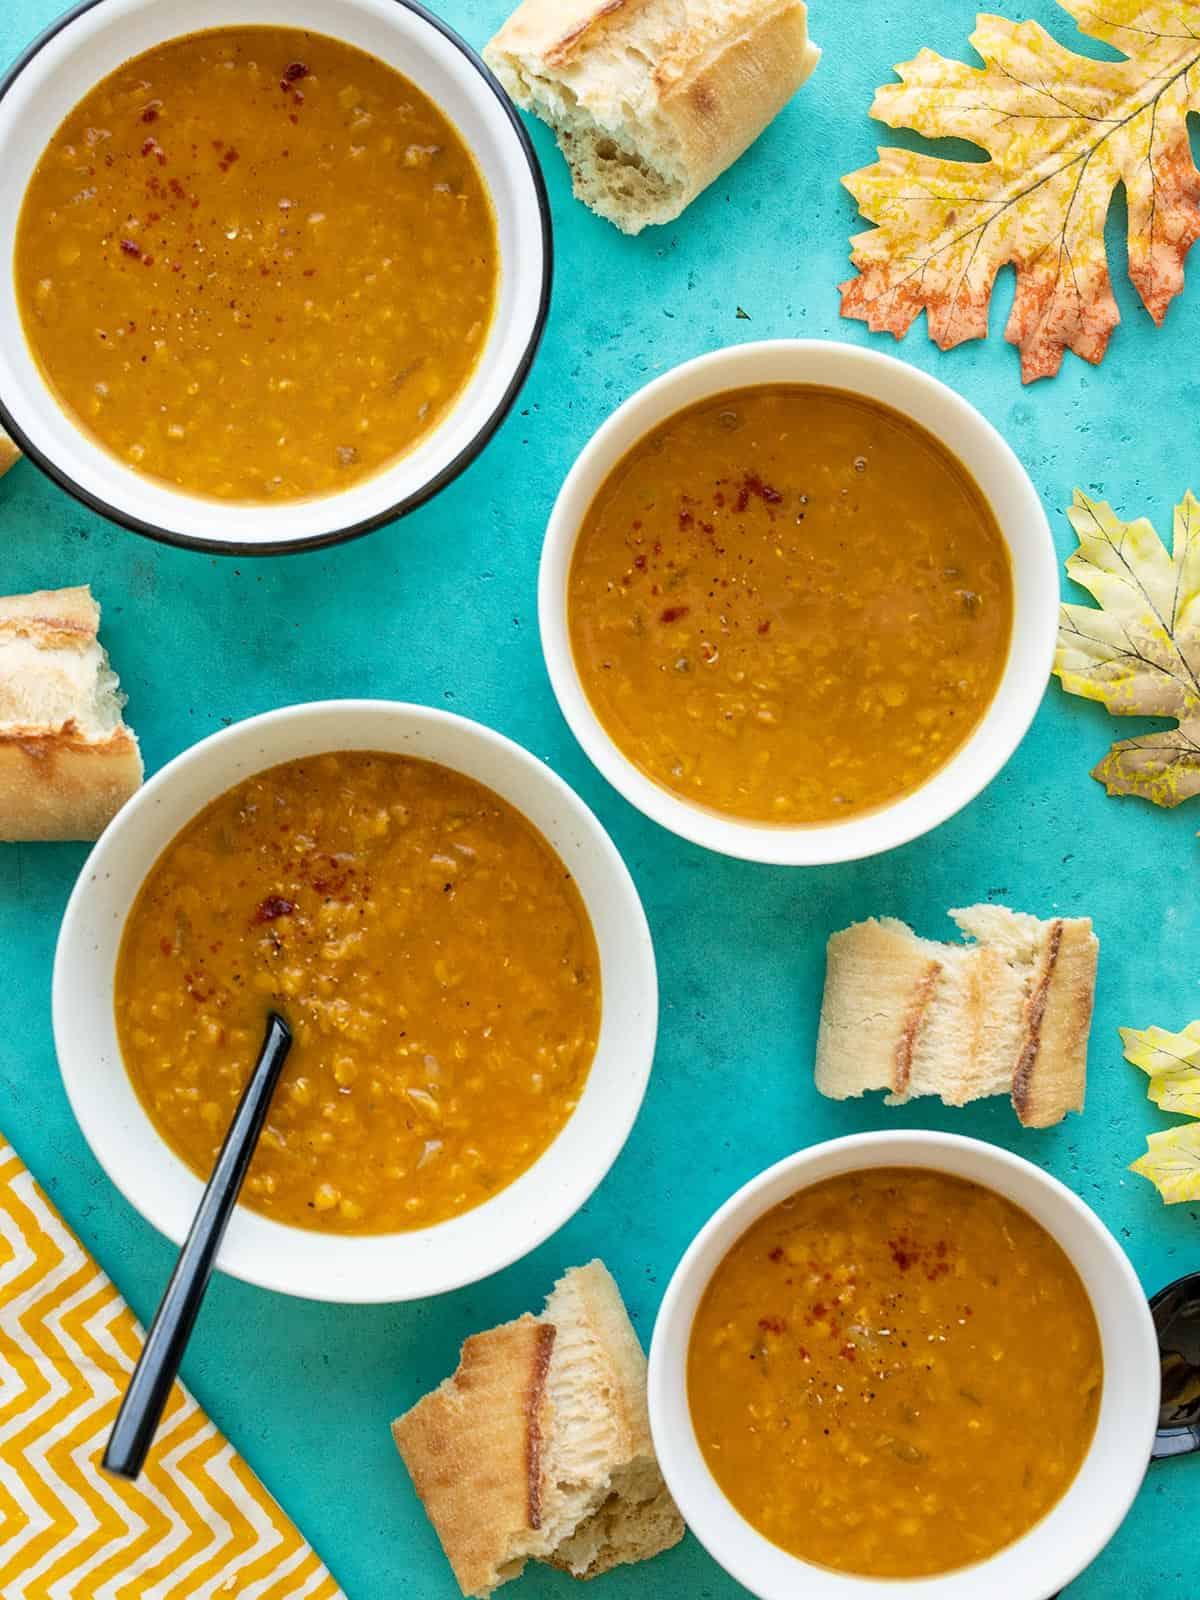 Four bowls of curried red lentil and pumpkin soup with bread and leaves scattered around the bowls